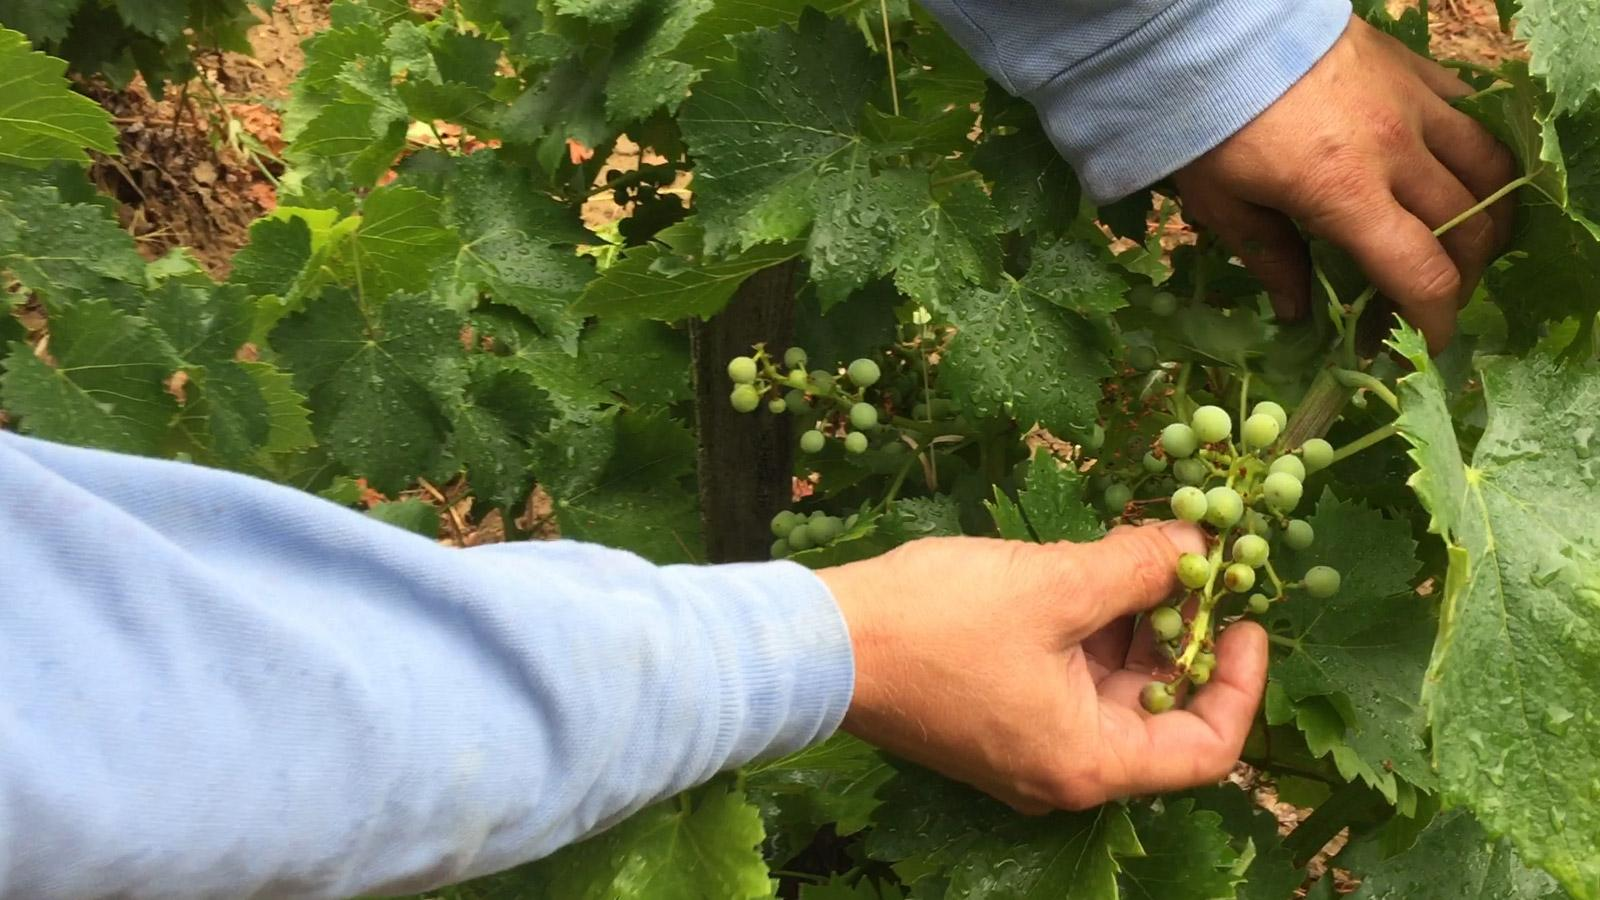 Domaine La Barroche's 2017 crop was reduced by grape shatter.